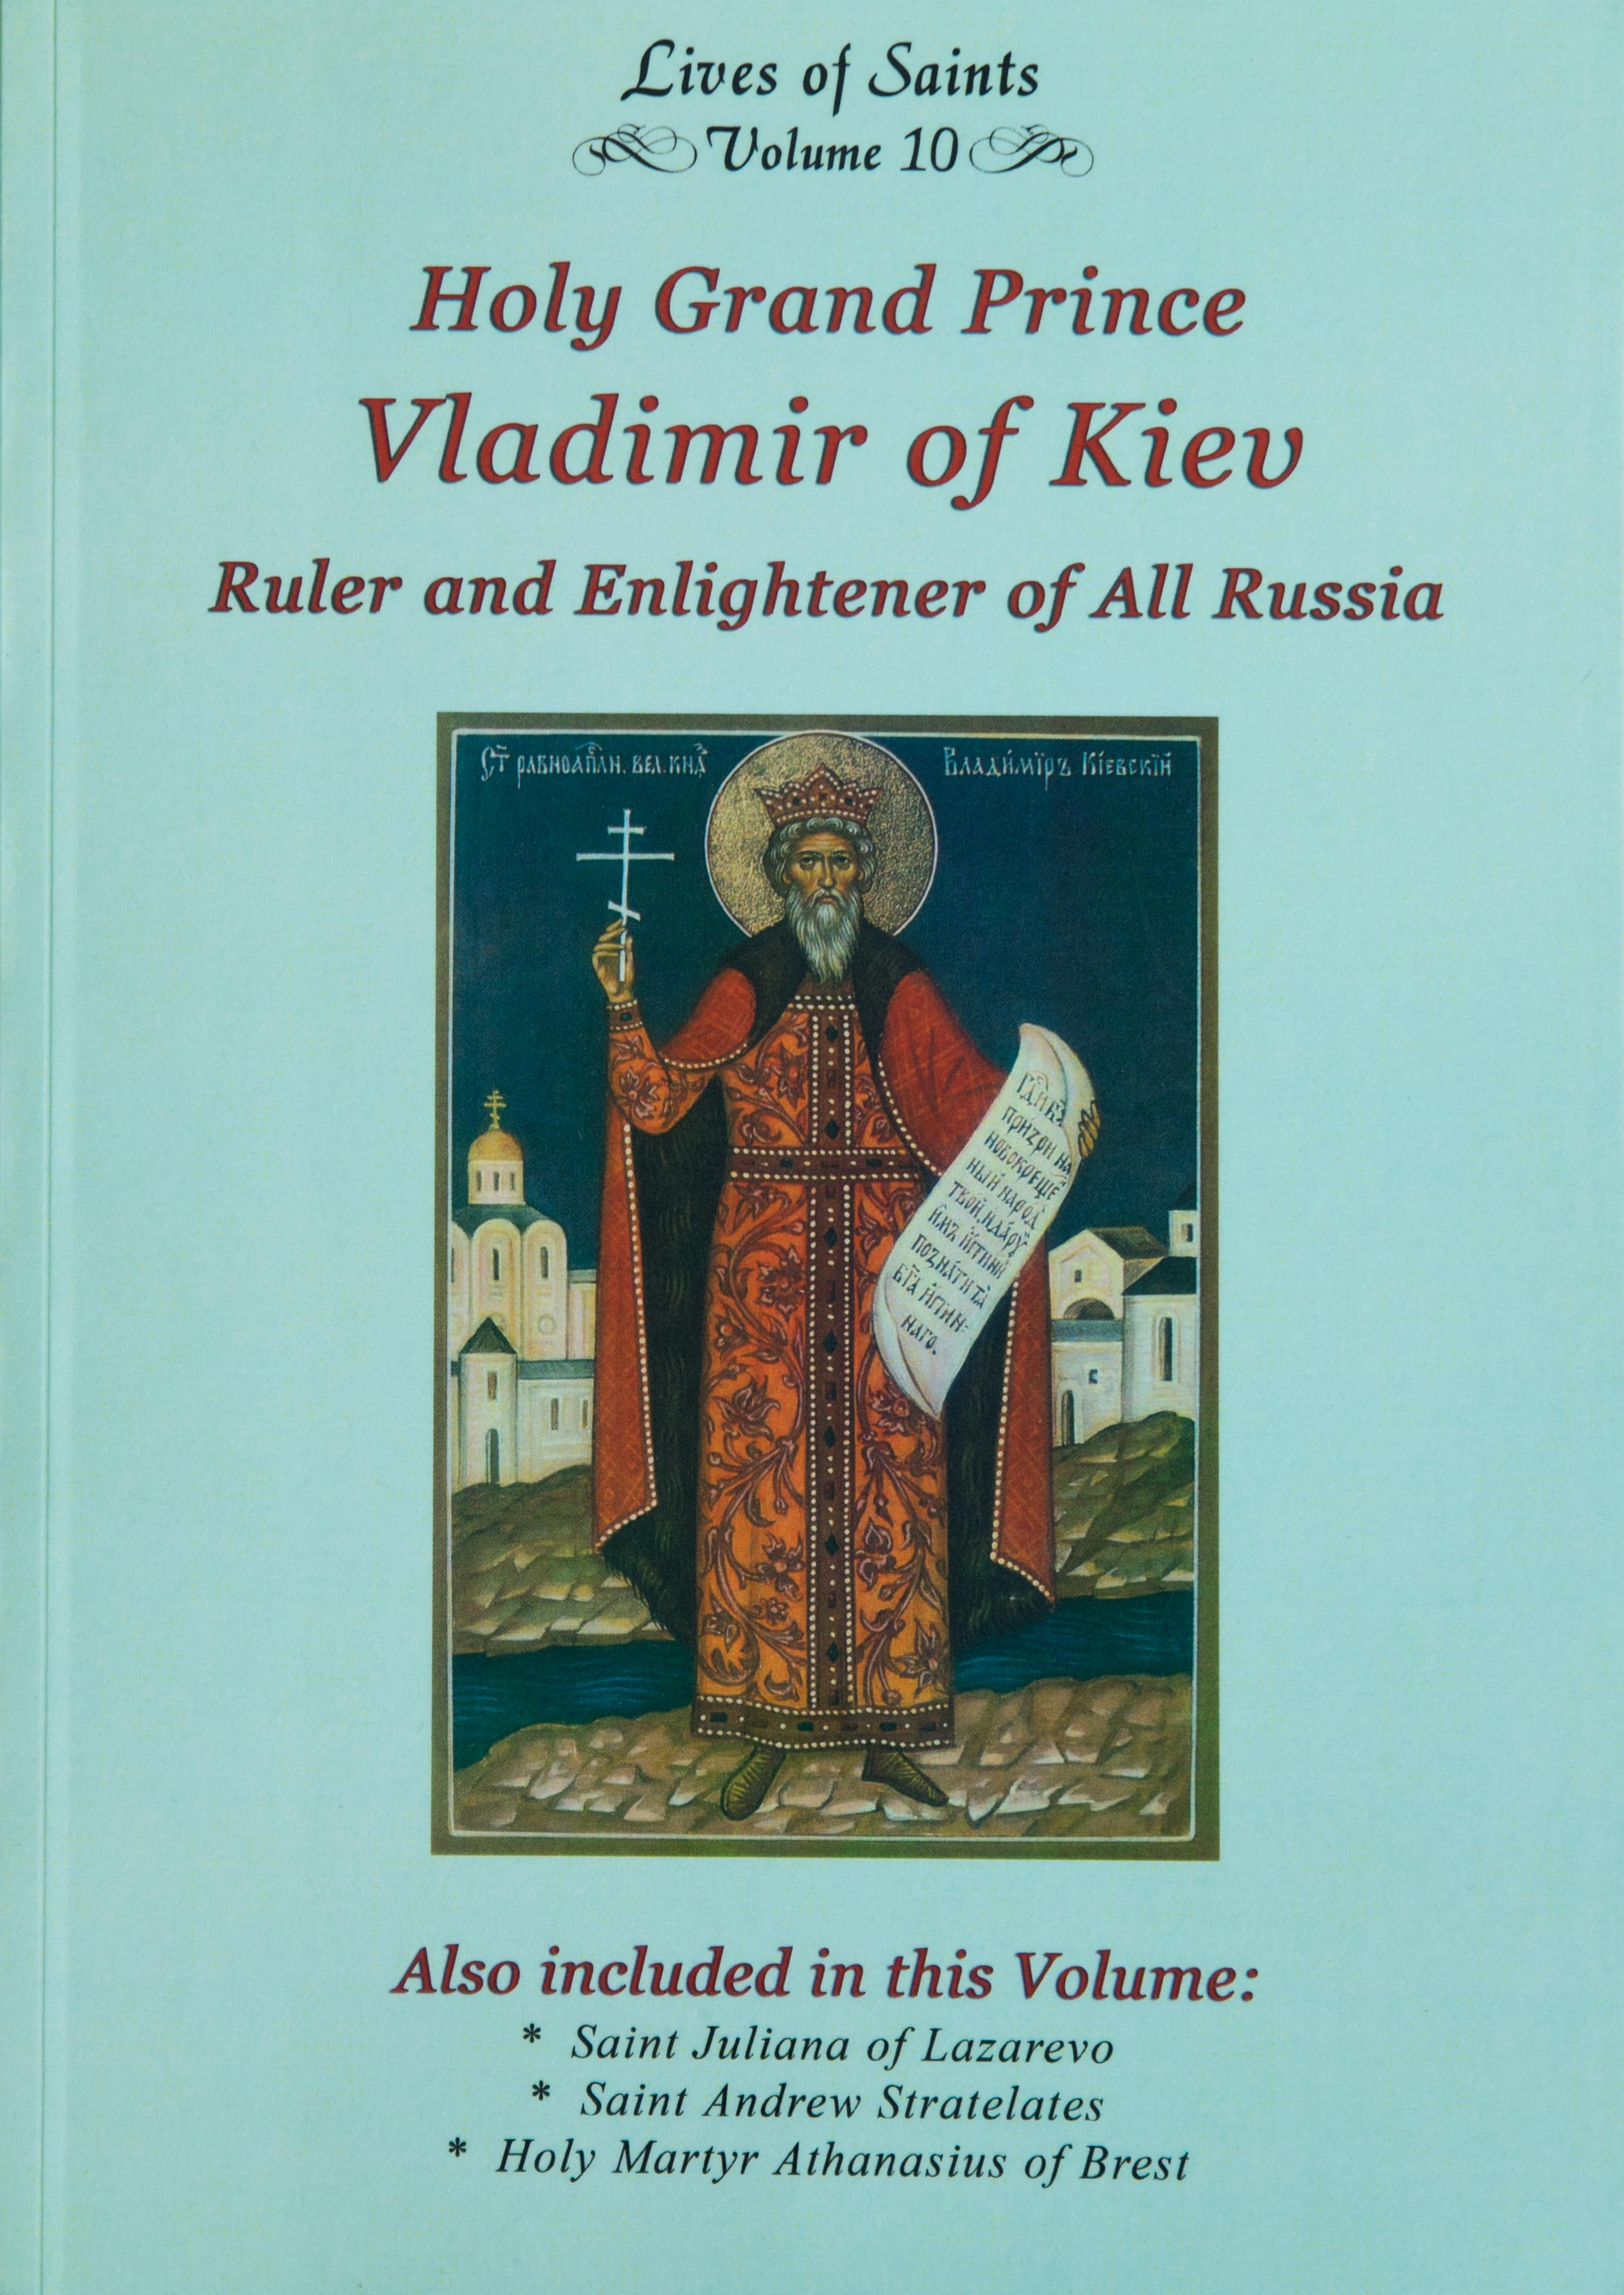 Lives of Saints Vol. 10: Holy Grand Prince Vladimir of Kiev